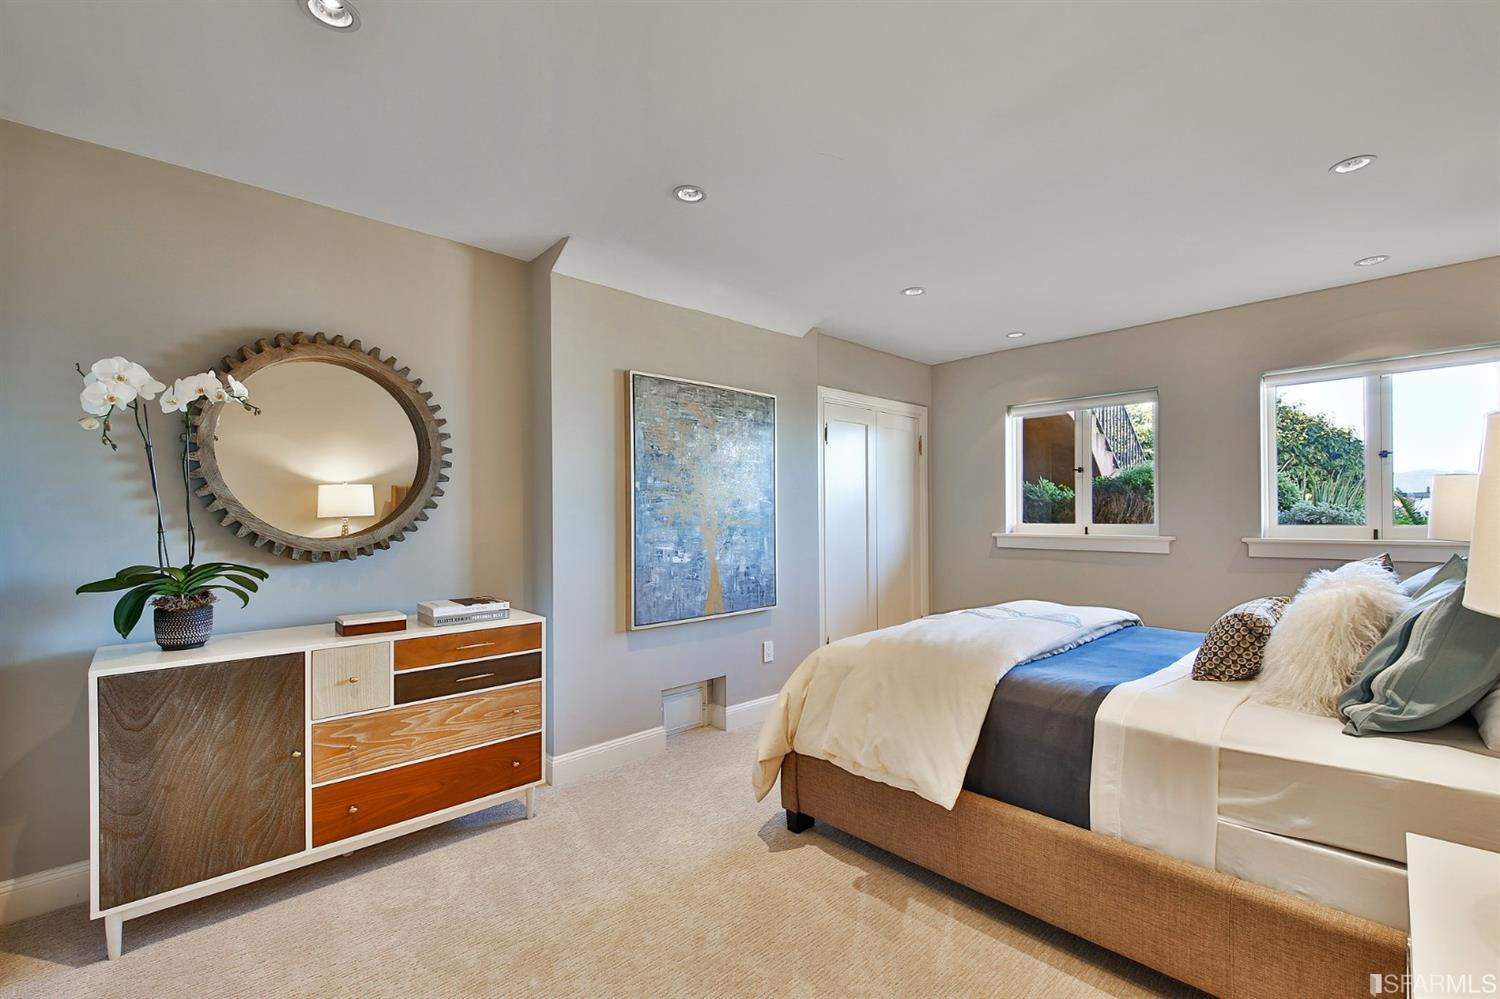 Bedroom #4 with 2 closets and gorgeous views of the landscaped garden & GGB.